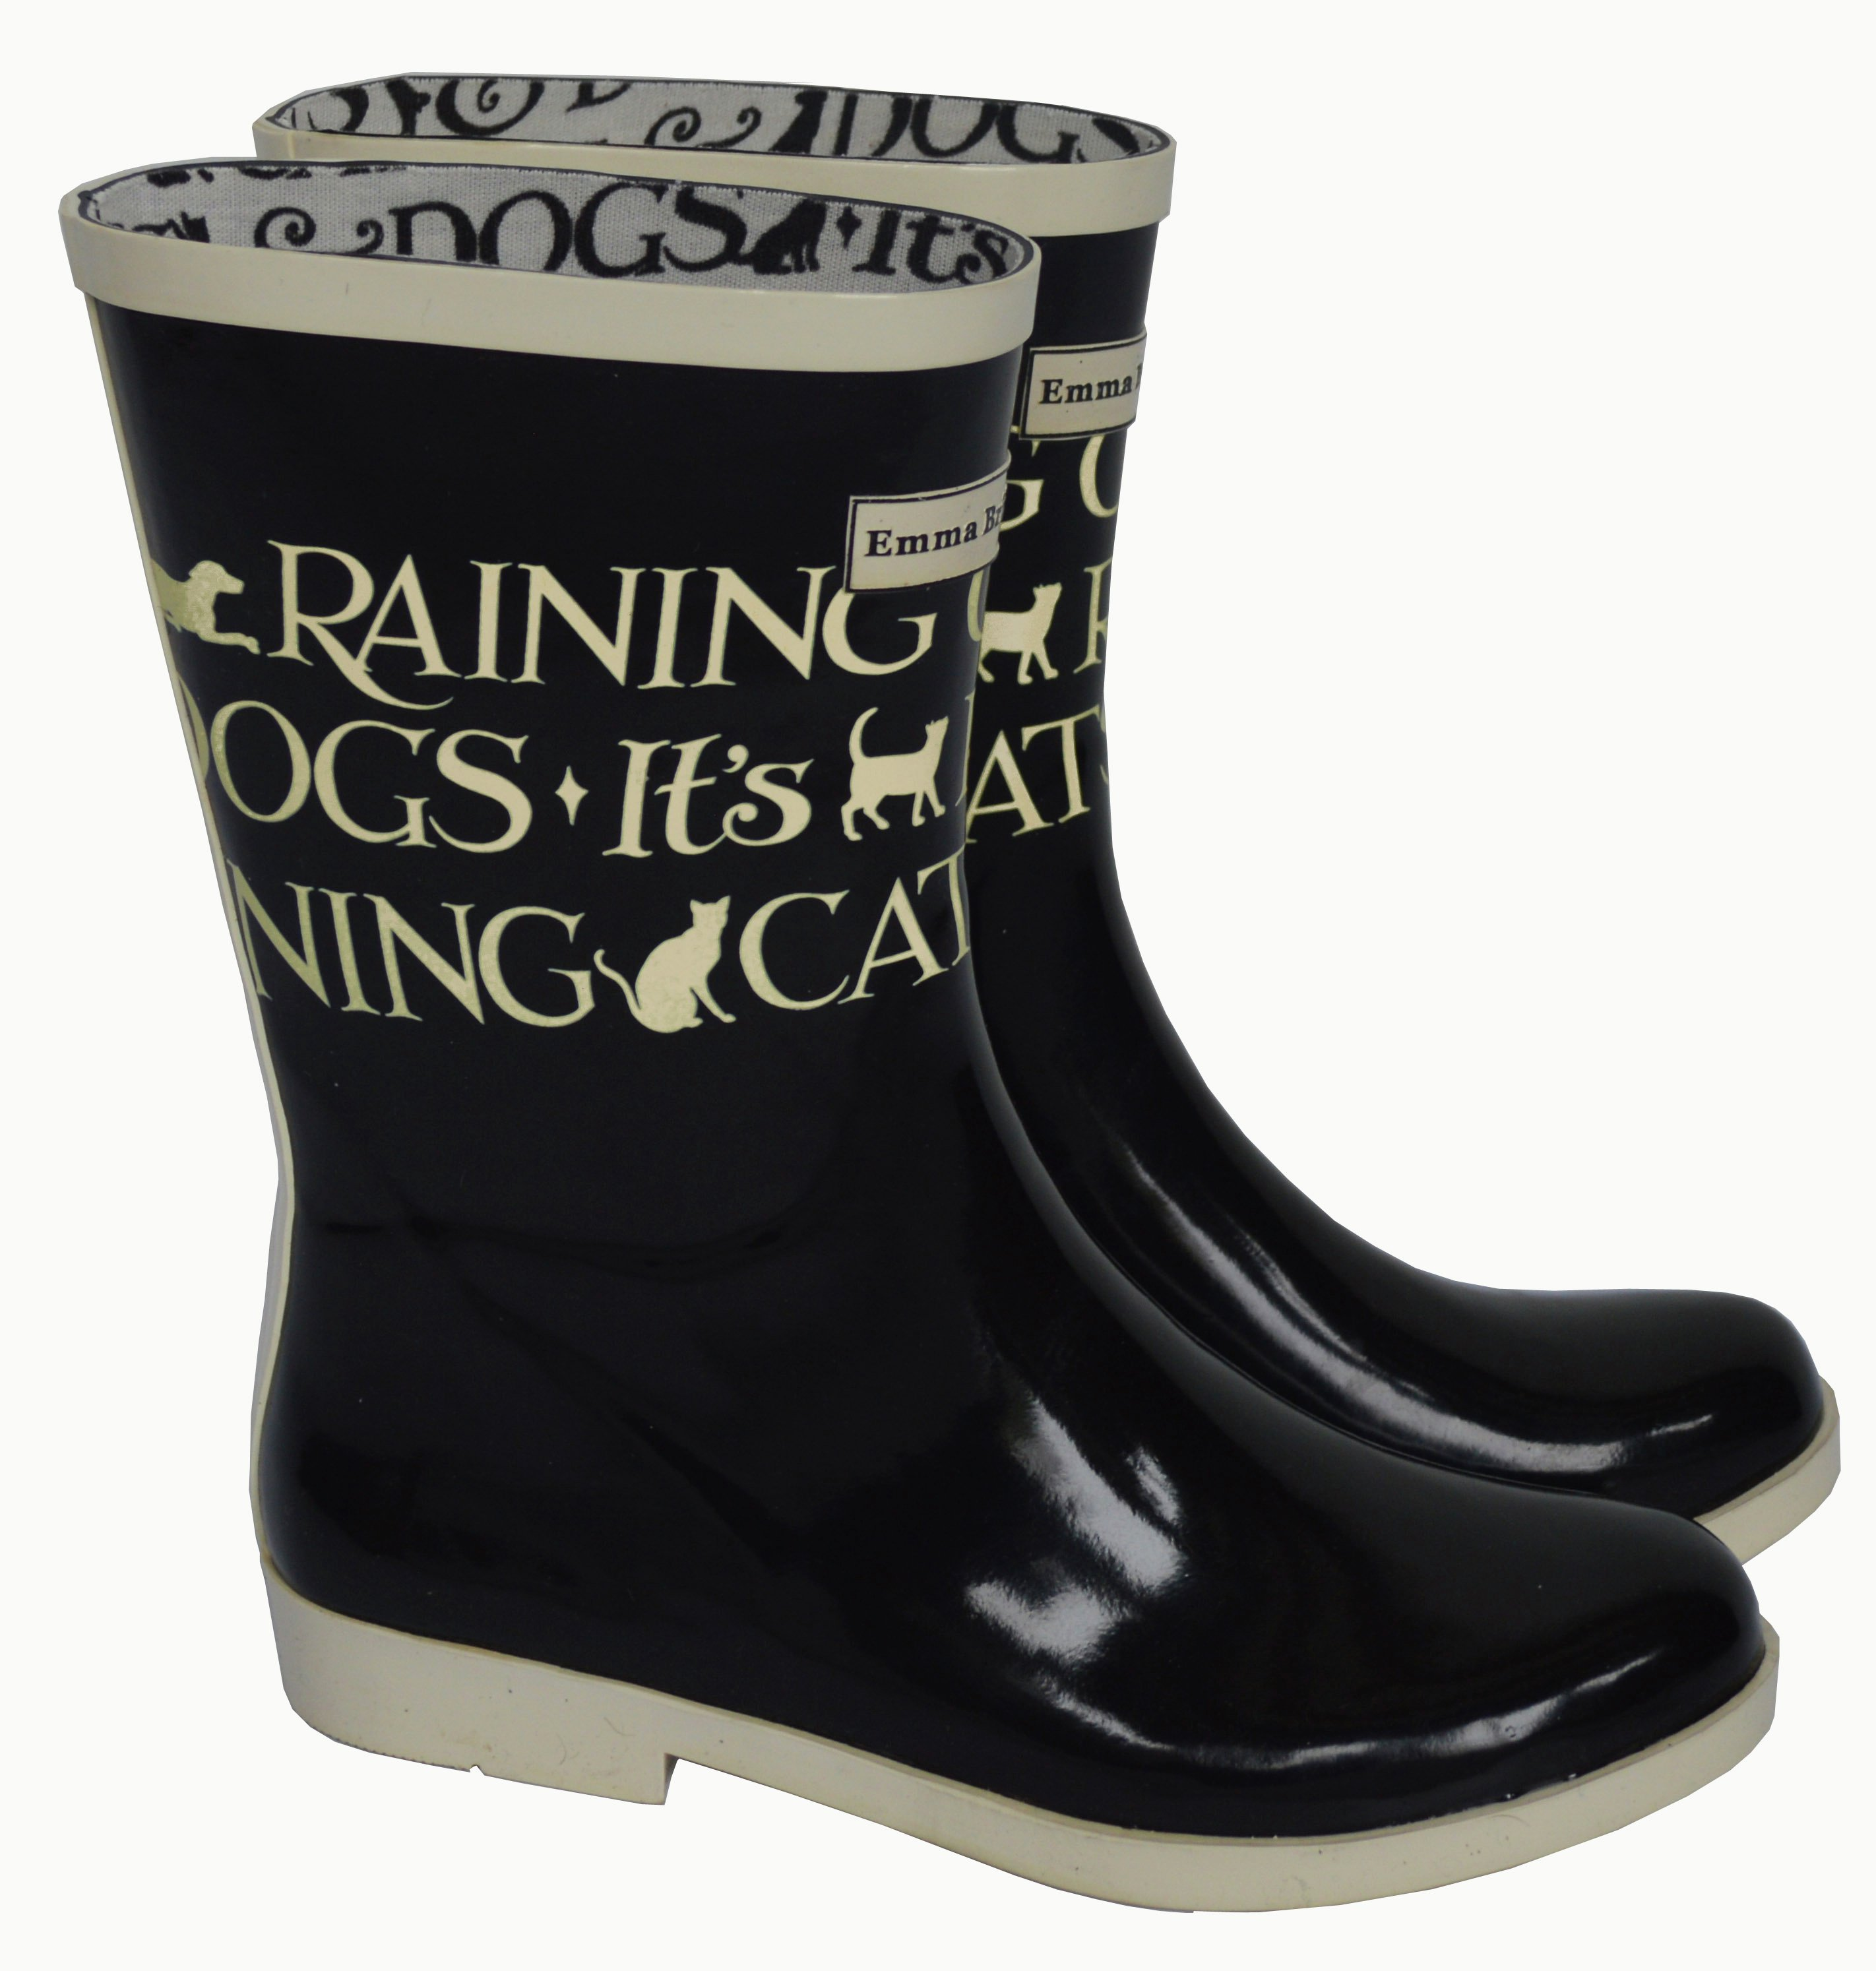 Image of Emma Bridgewater - Womens - Short Toast Wellies - Size 3